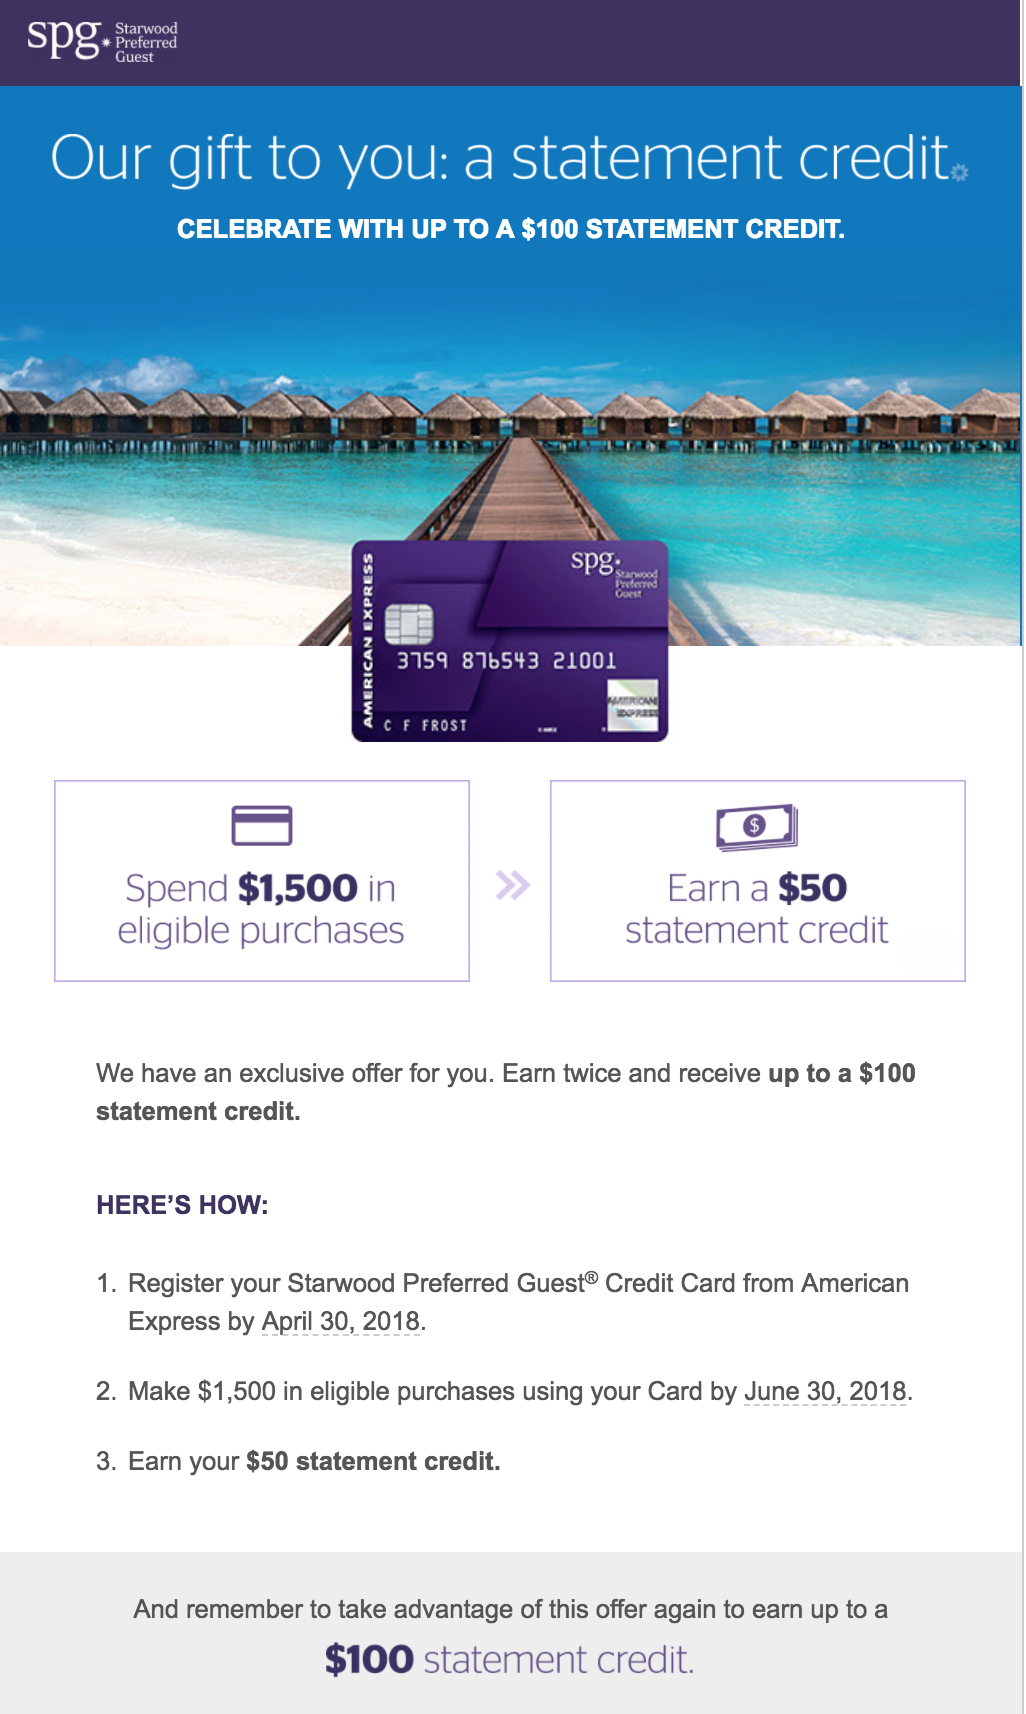 Spend promotion for my consumer Amex Starwood Preferred Guest Credit Card.